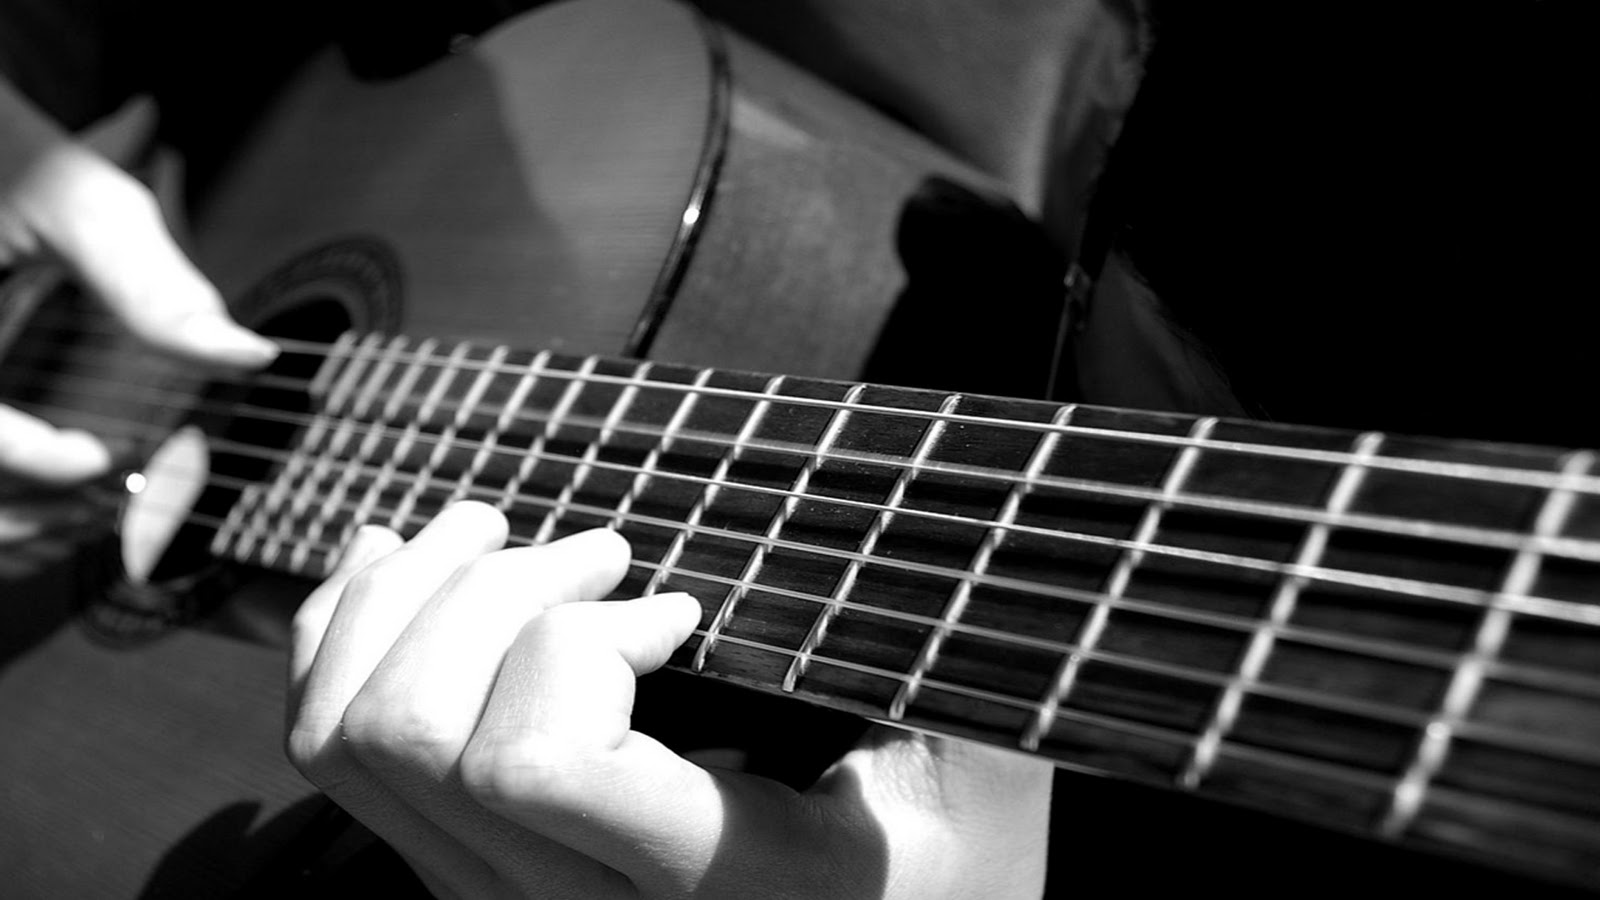 Classical Guitar Playing Acoustic Hands Fretboard Fingers Fingerpicking Black And White Music Desktop HD Wallpaper 1920x1080